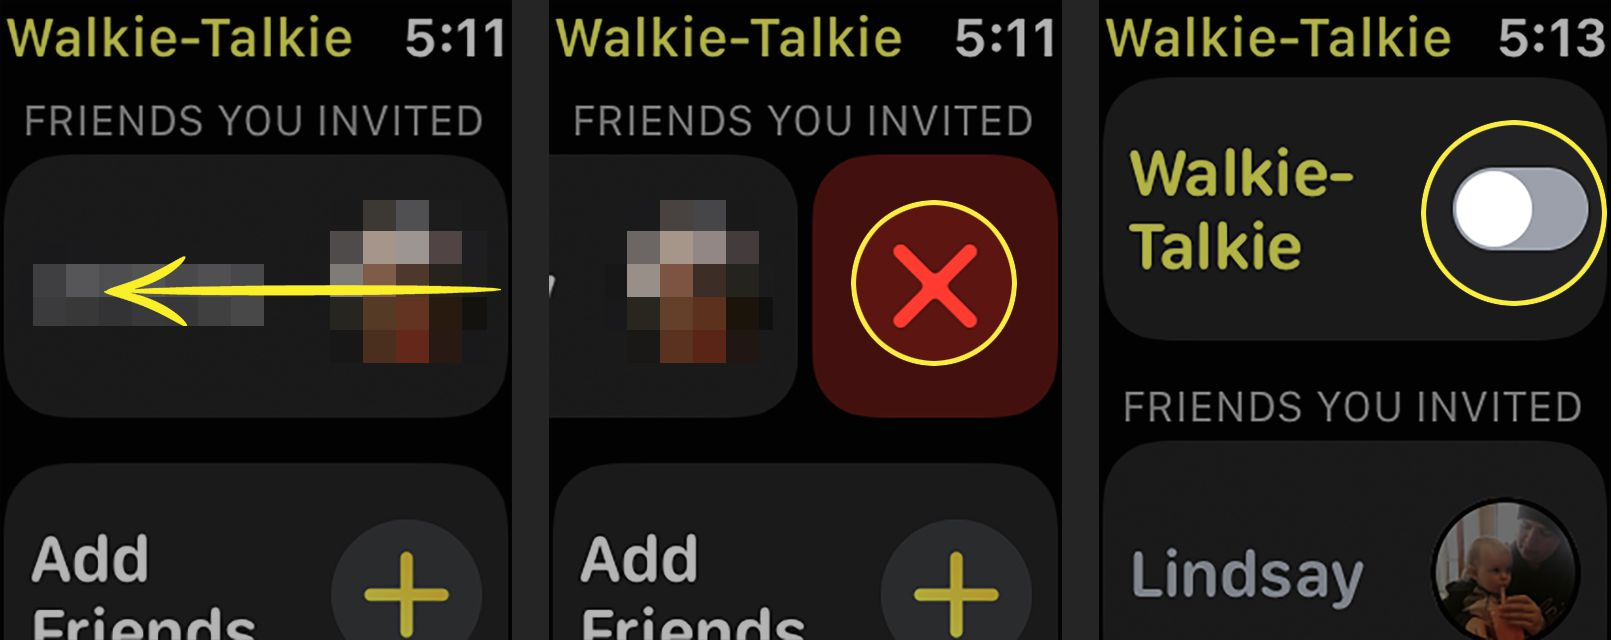 Removing a contact from the Walkie-Talkie app